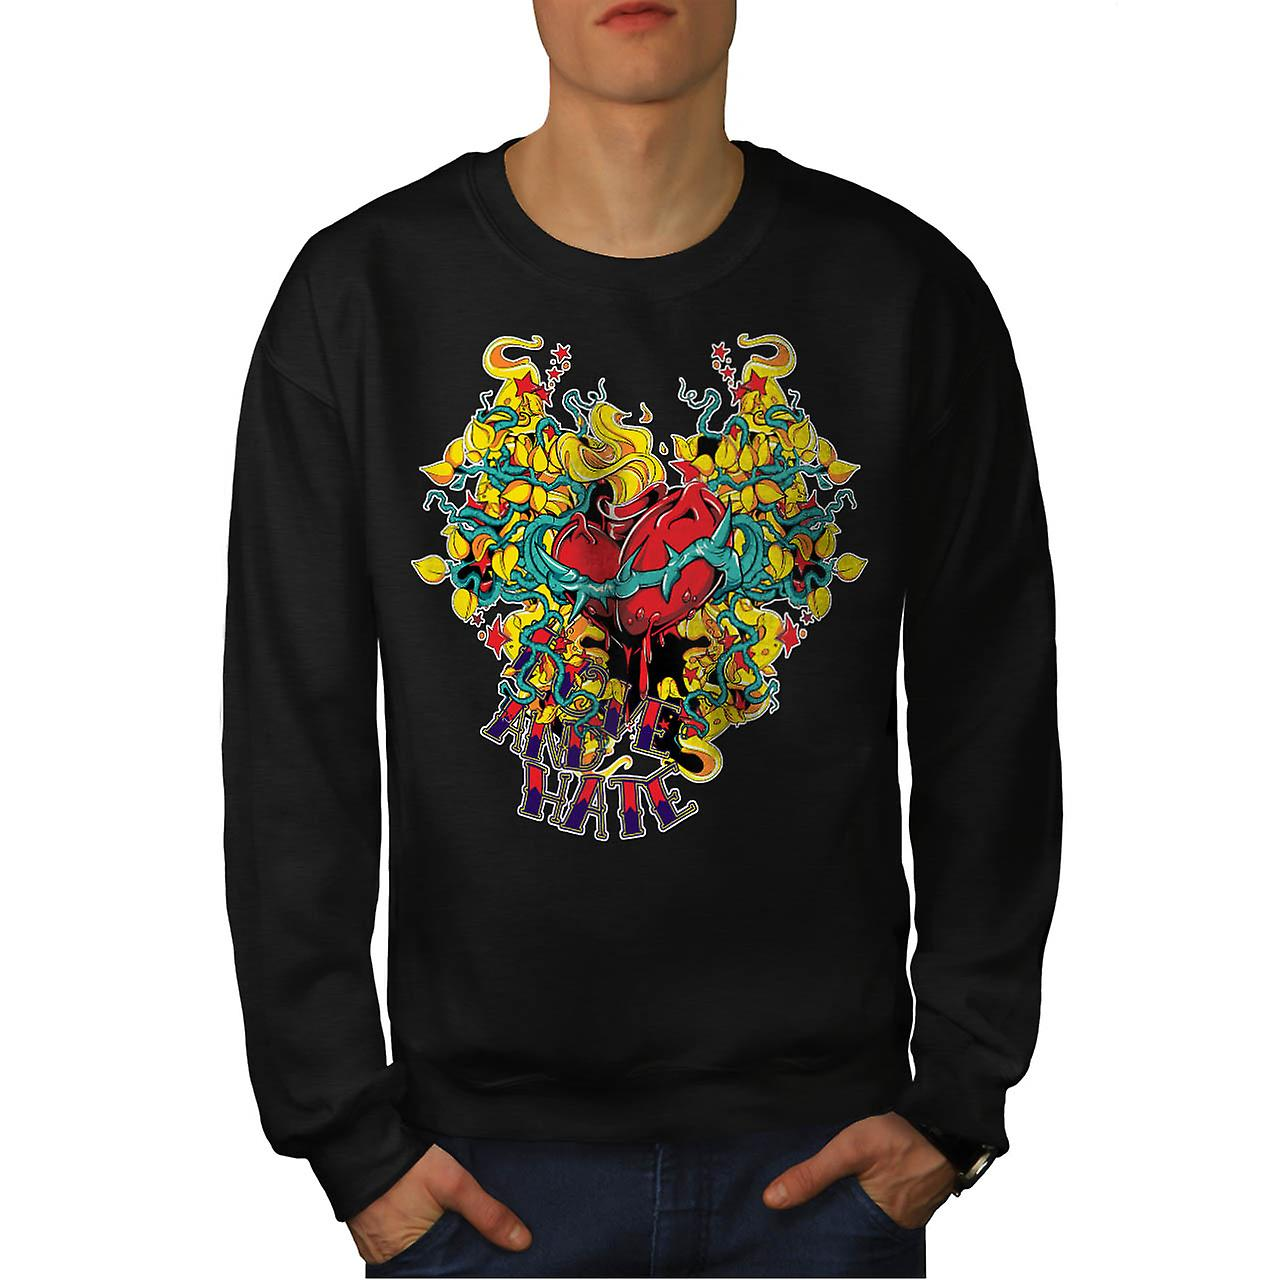 Love And Hate Heart Beat Life Men Black Sweatshirt | Wellcoda